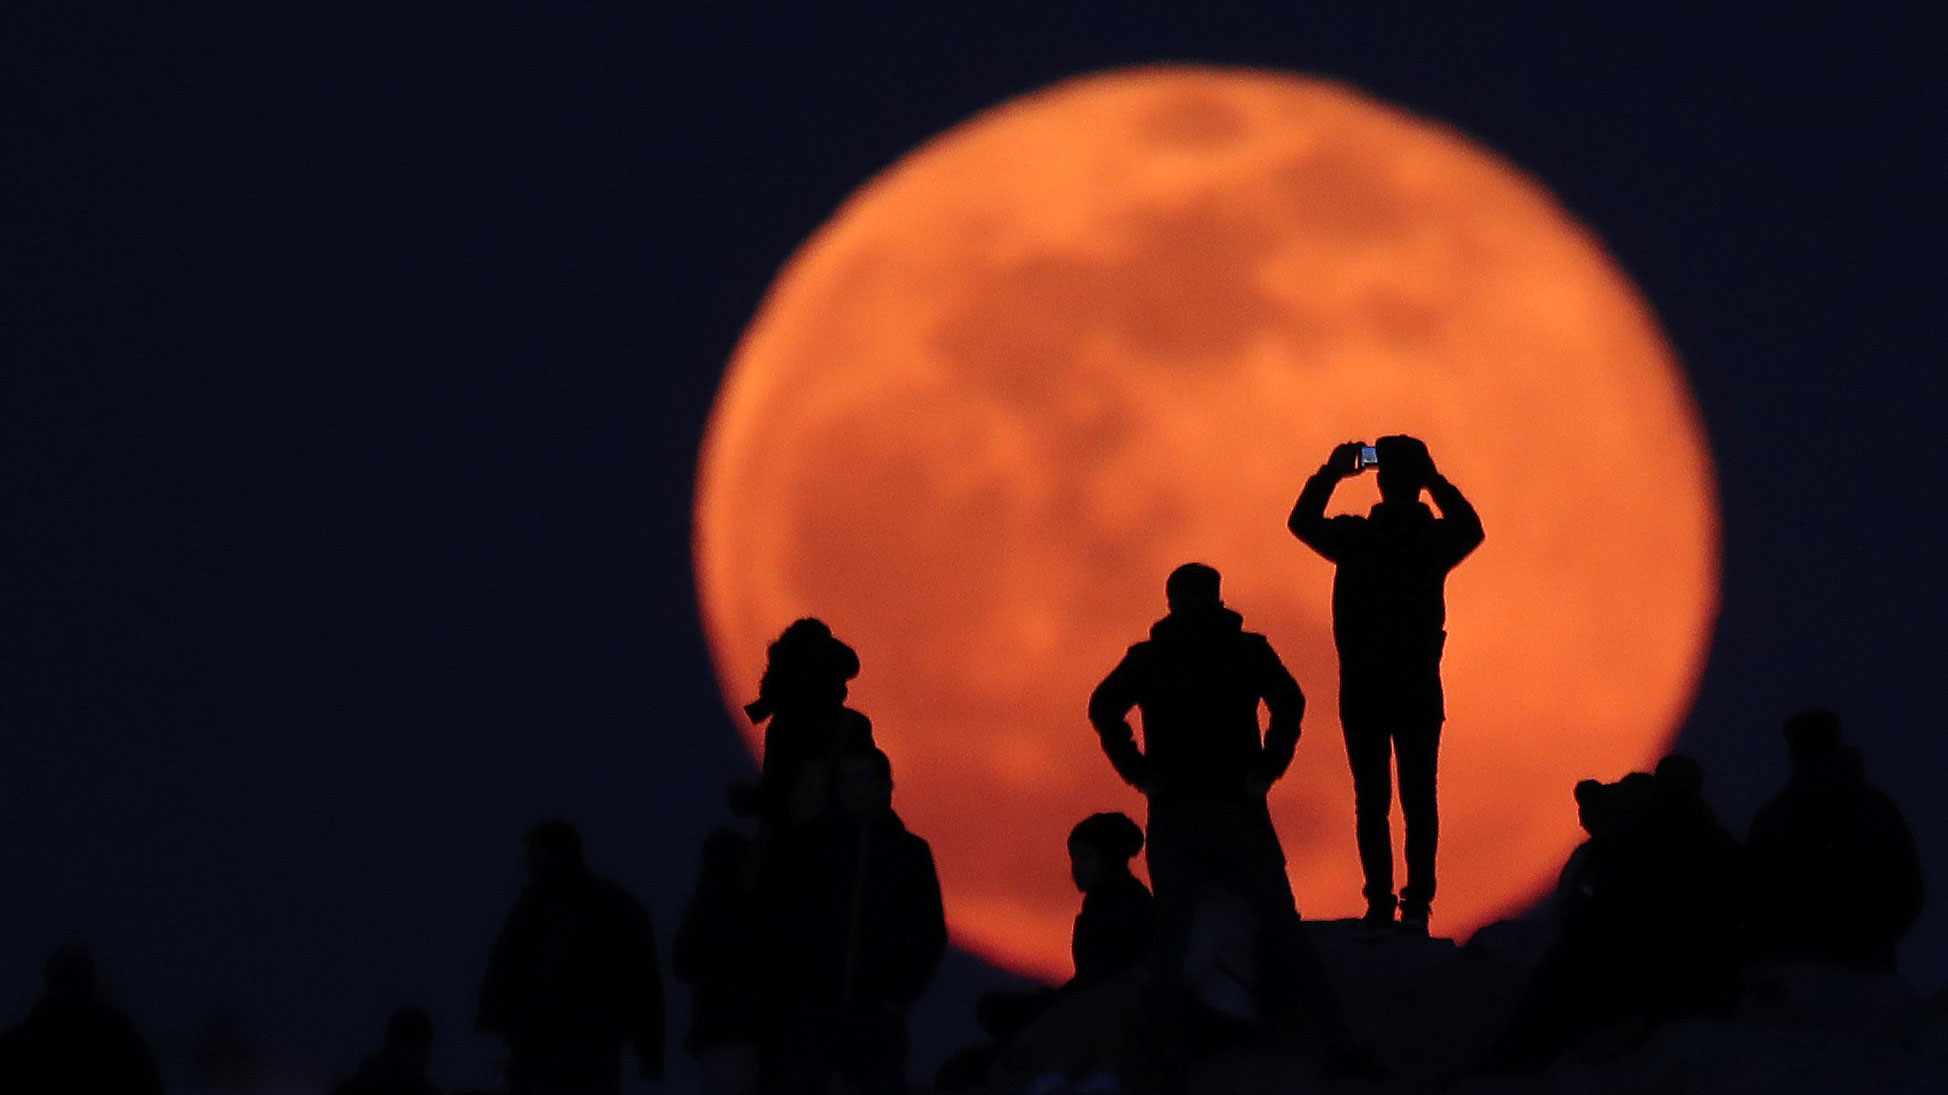 People observe a rising full snow moon rises as they visit the Areios Pagos hill at the archaeological site of the Acropolis in Athens, Greece, February 9, 2020. REUTERS/Alkis Konstantinidis